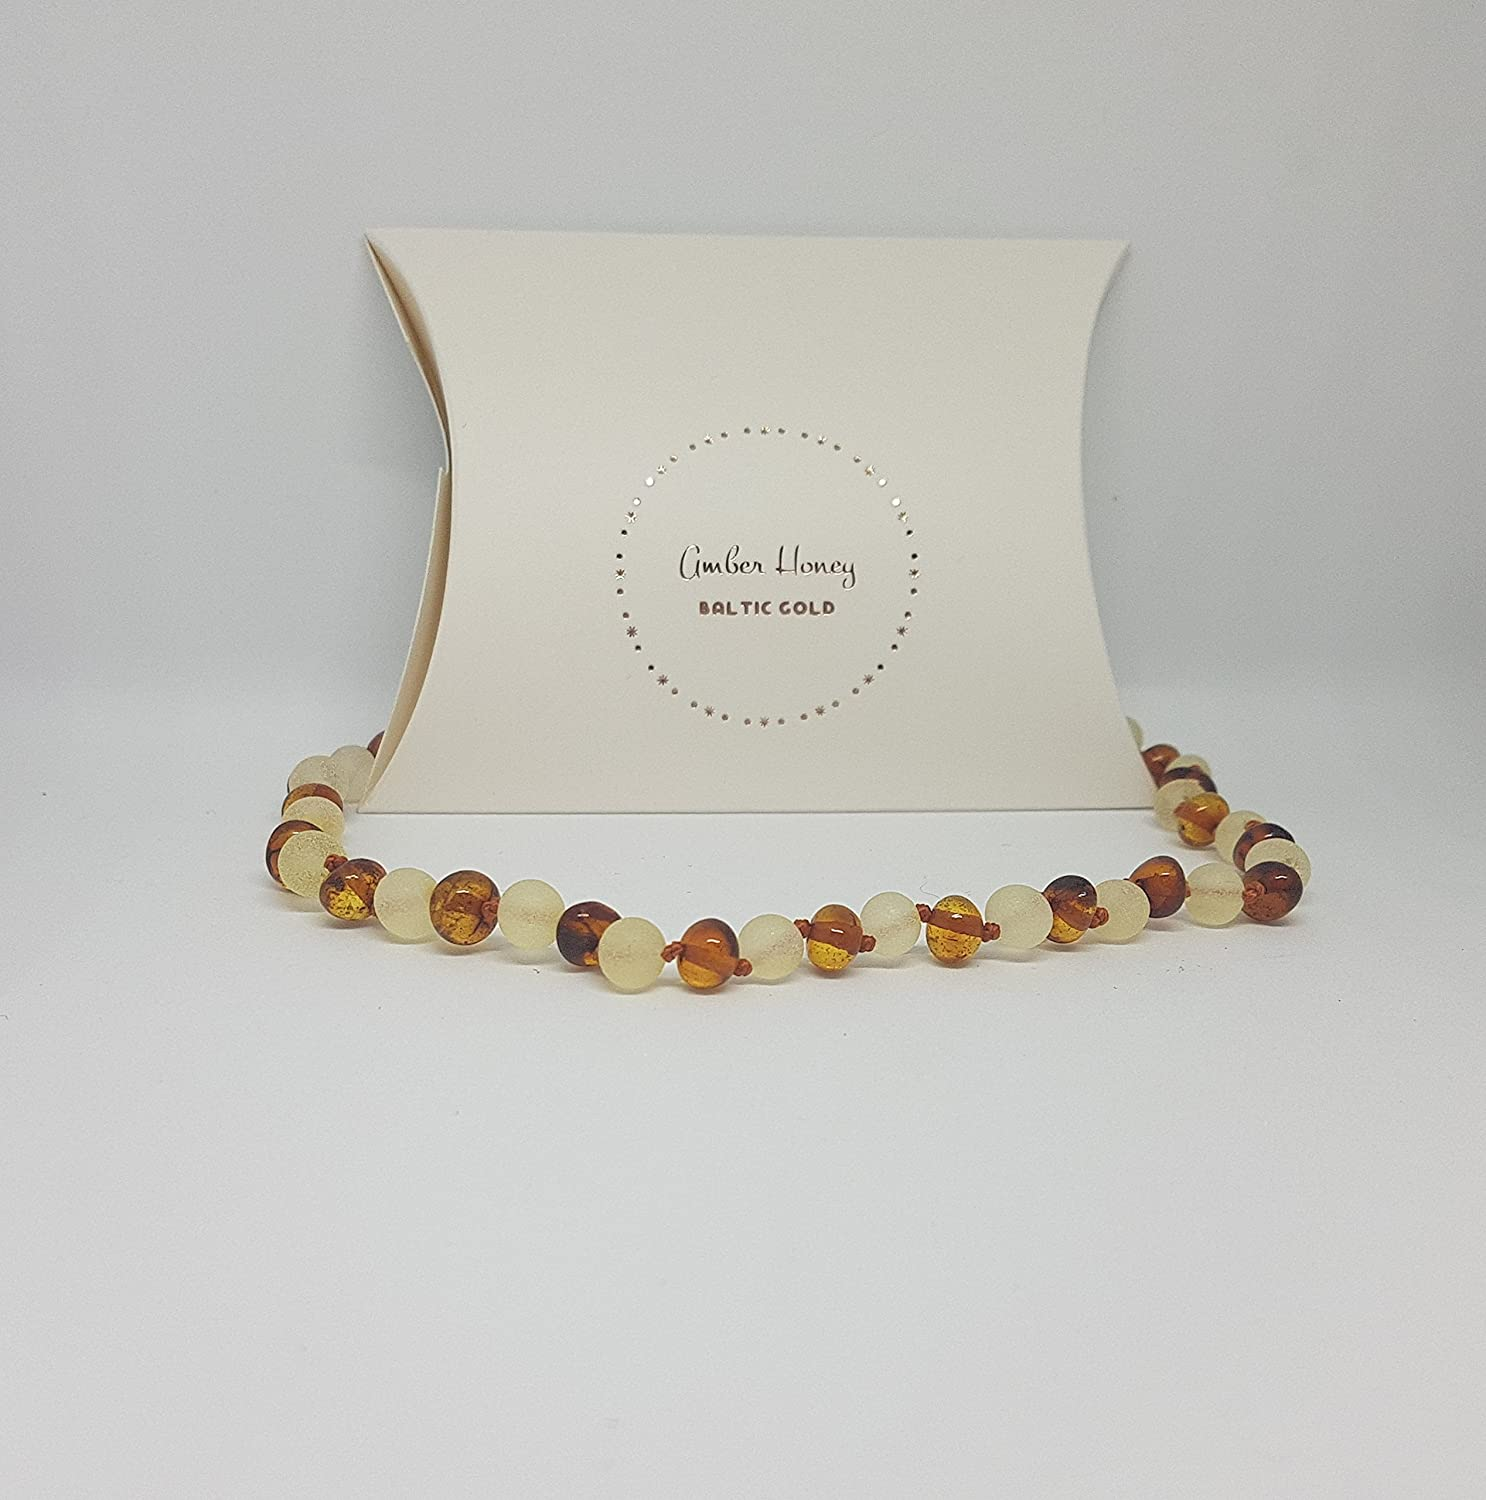 Lemon Baltic Amber Natural Pain Reliever Stylish Gift Baby Girls /& Boys Length ~37 ~14.5 Amber Honey/_Baltic Gold Amber Teething Necklace RAW not Polished Length ~37 ~14.5